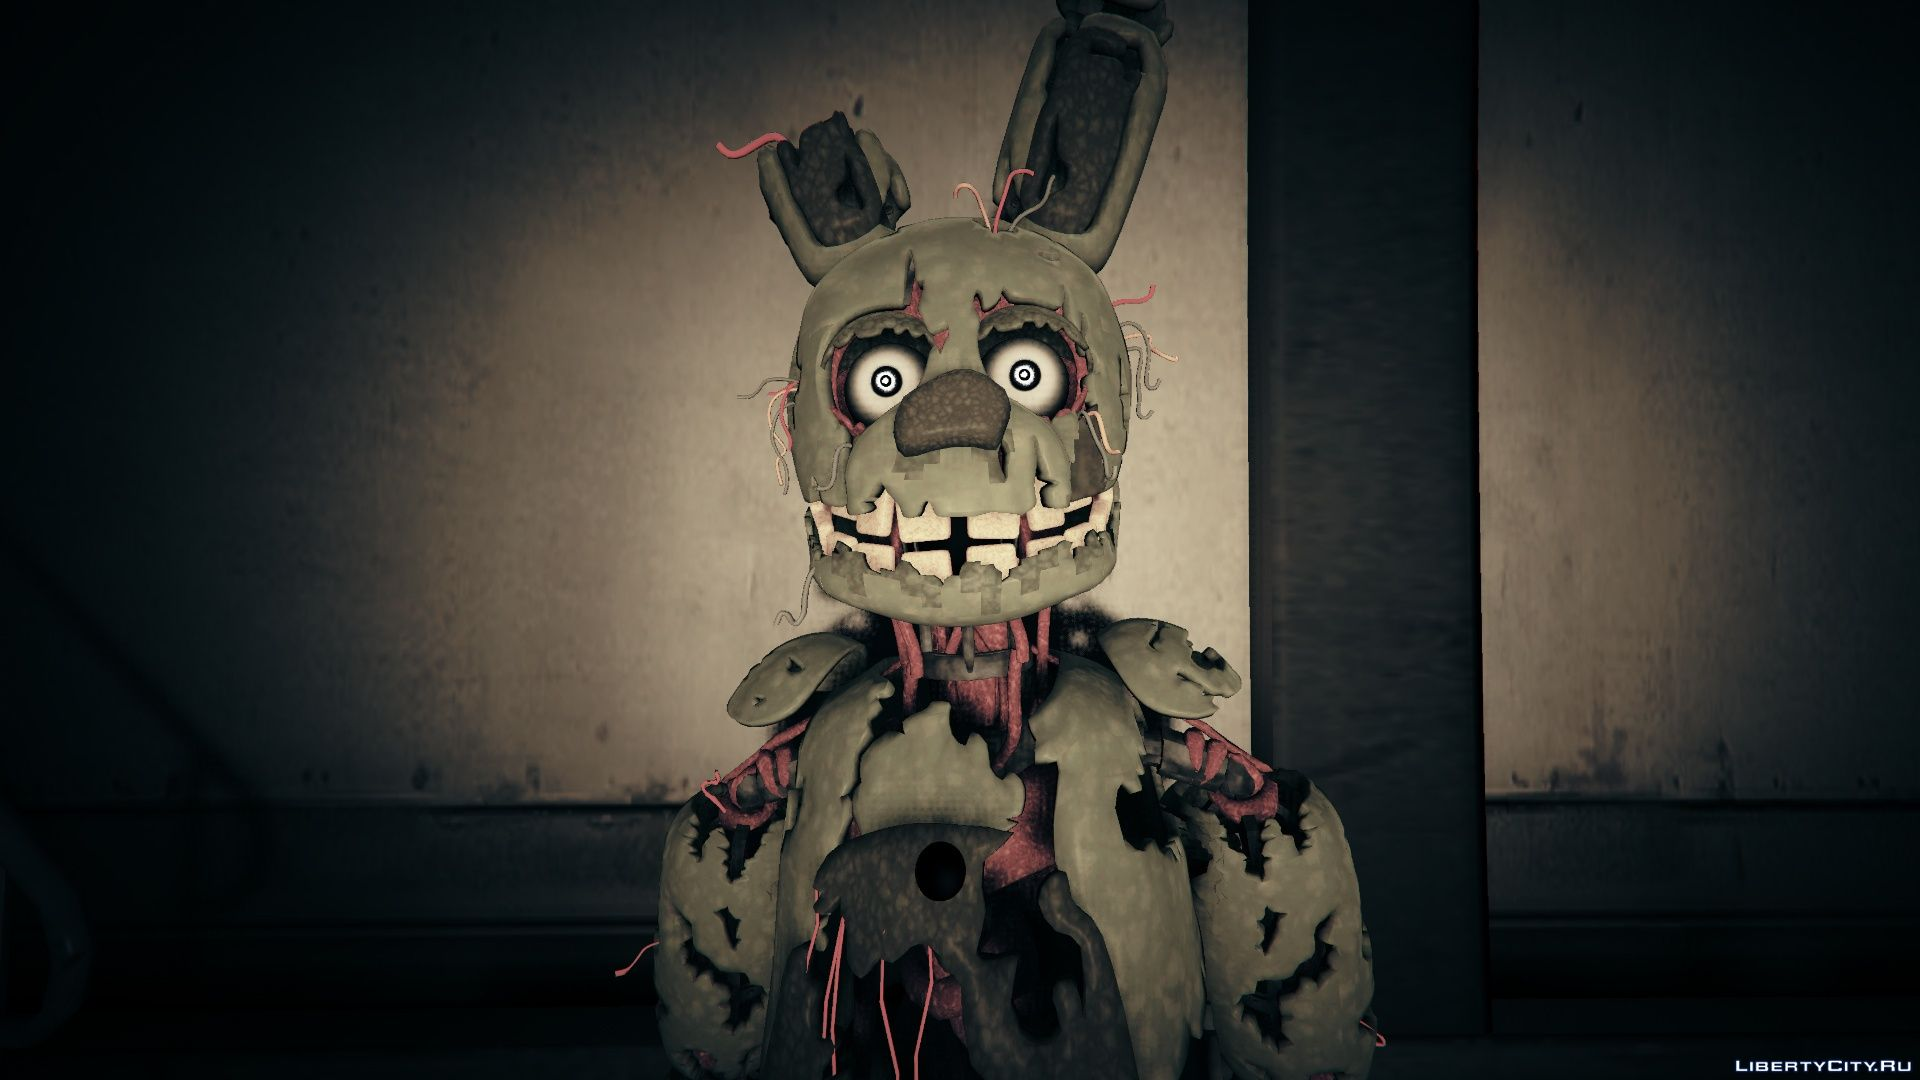 FNAF 3) Springtrap 1 0 - A Springtrap from Five Nights at